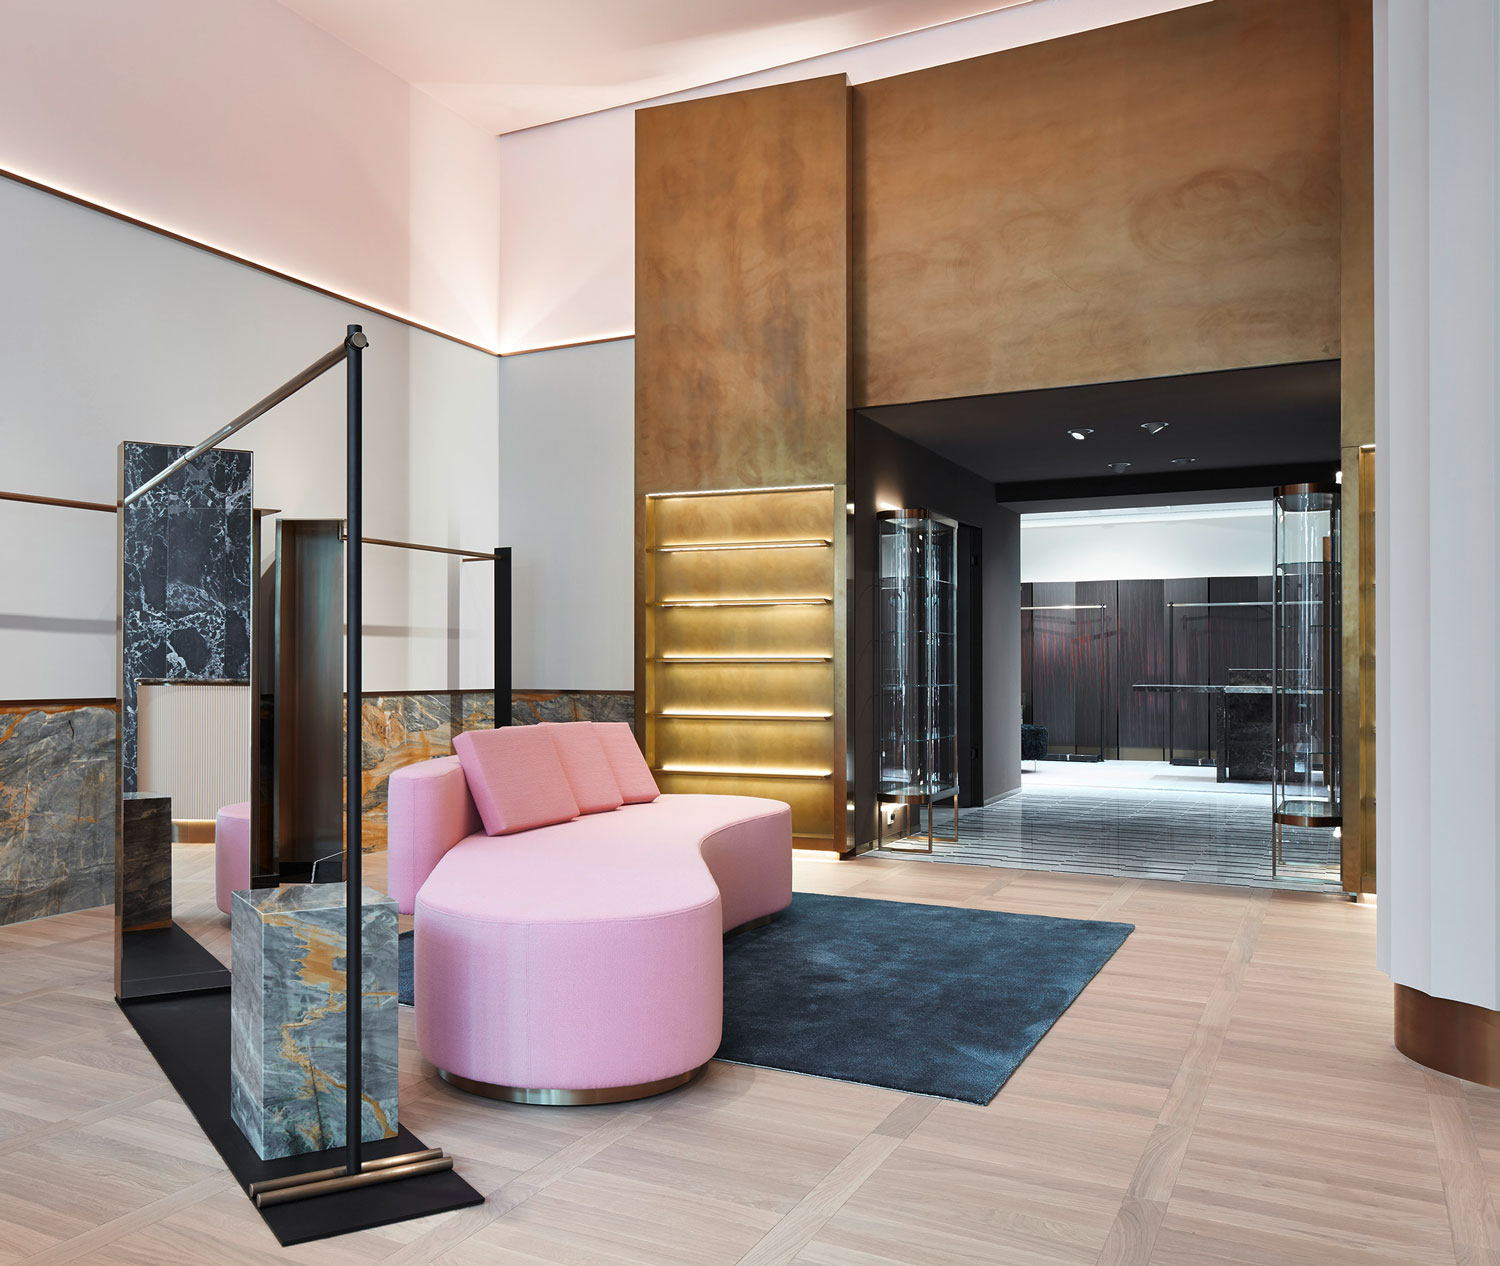 51 Modern Living Room Design From Talented Architects: Apropos Concept Store In Hamburg By Rodolphe Parente